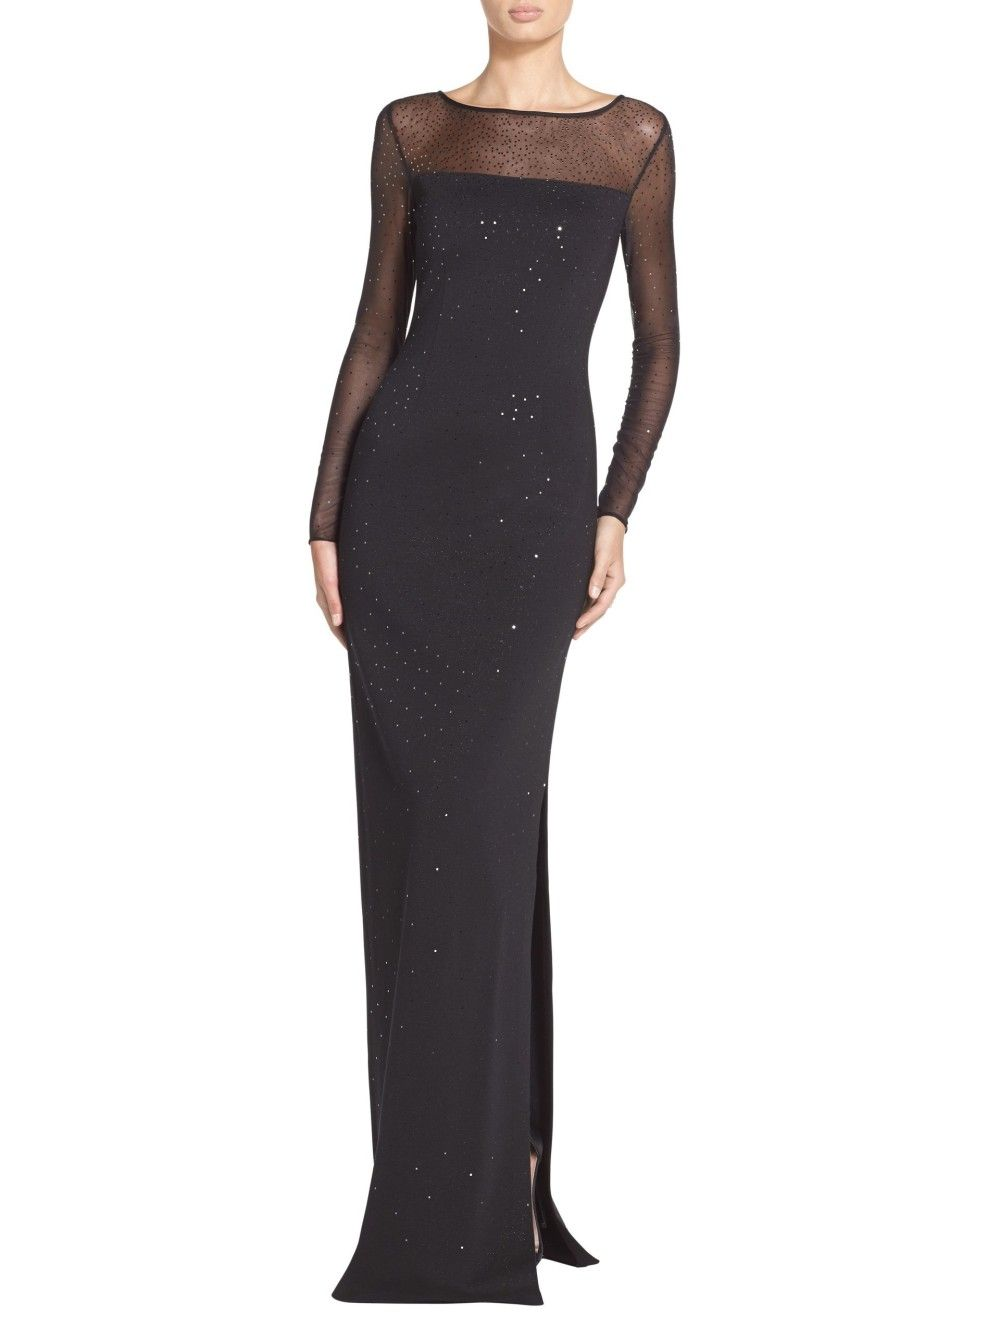 Sequined Shimmer Milano Knit Gown | St. John Knits | Black is the ...